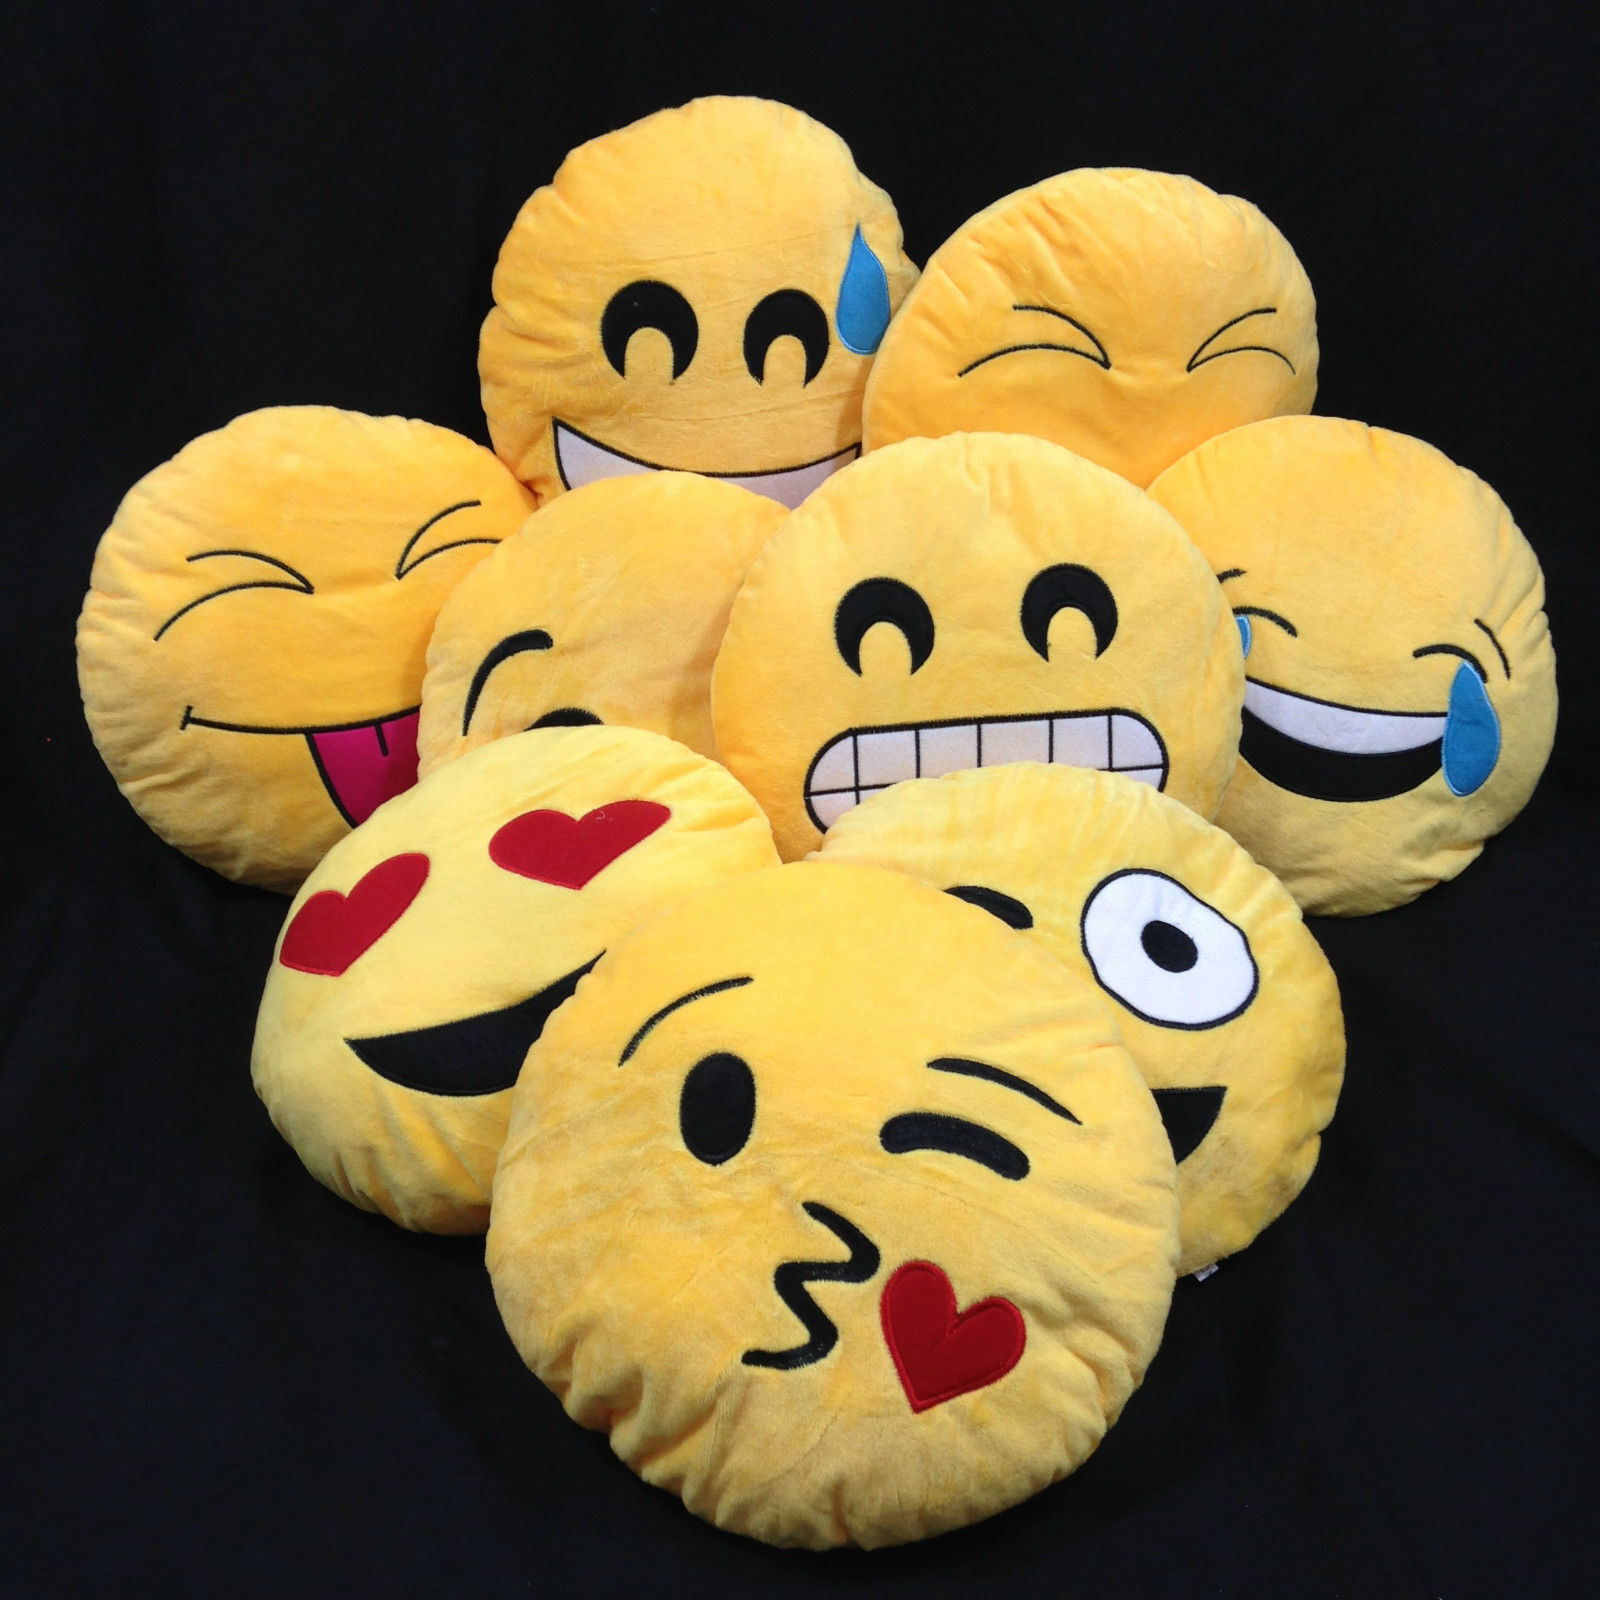 NEW Emoji Emoticon Yellow Round Cushion Soft Toys Pillow Plush